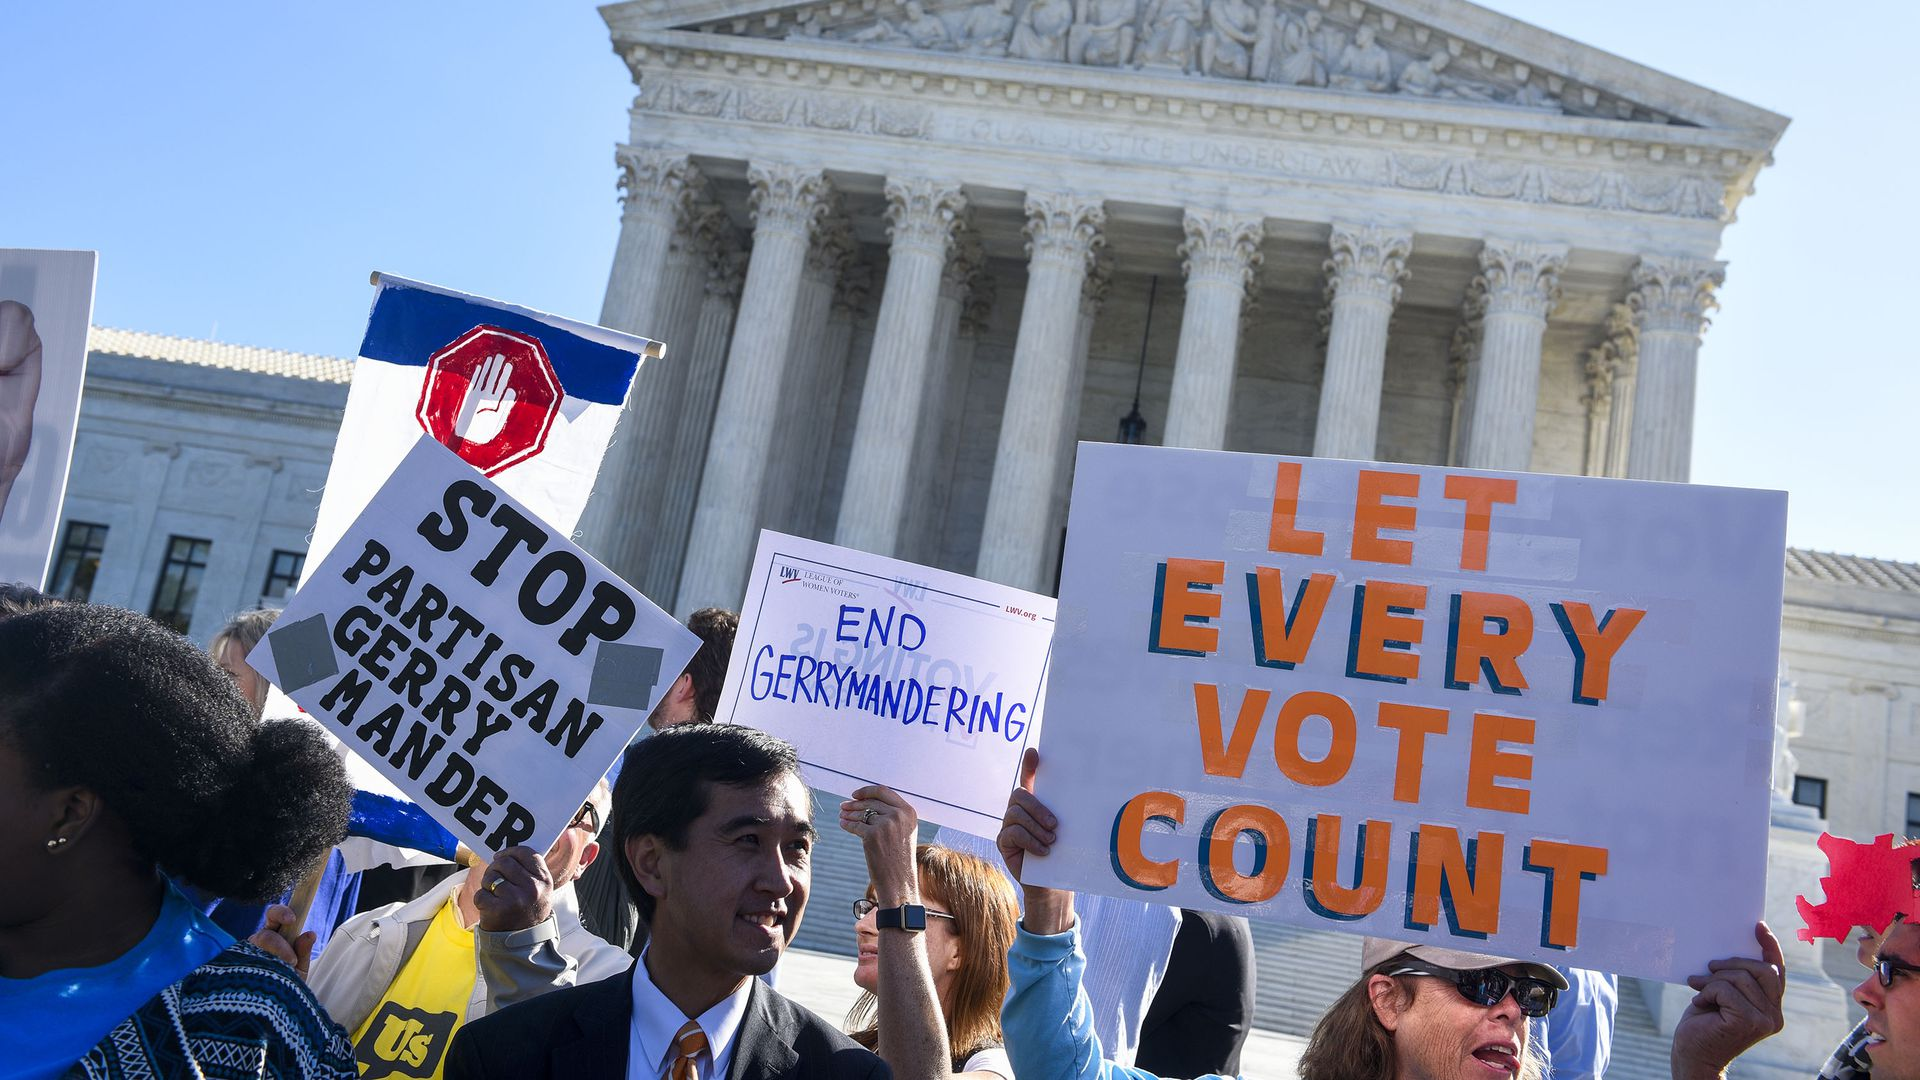 4. Supreme Court weighs limits on gerrymandering